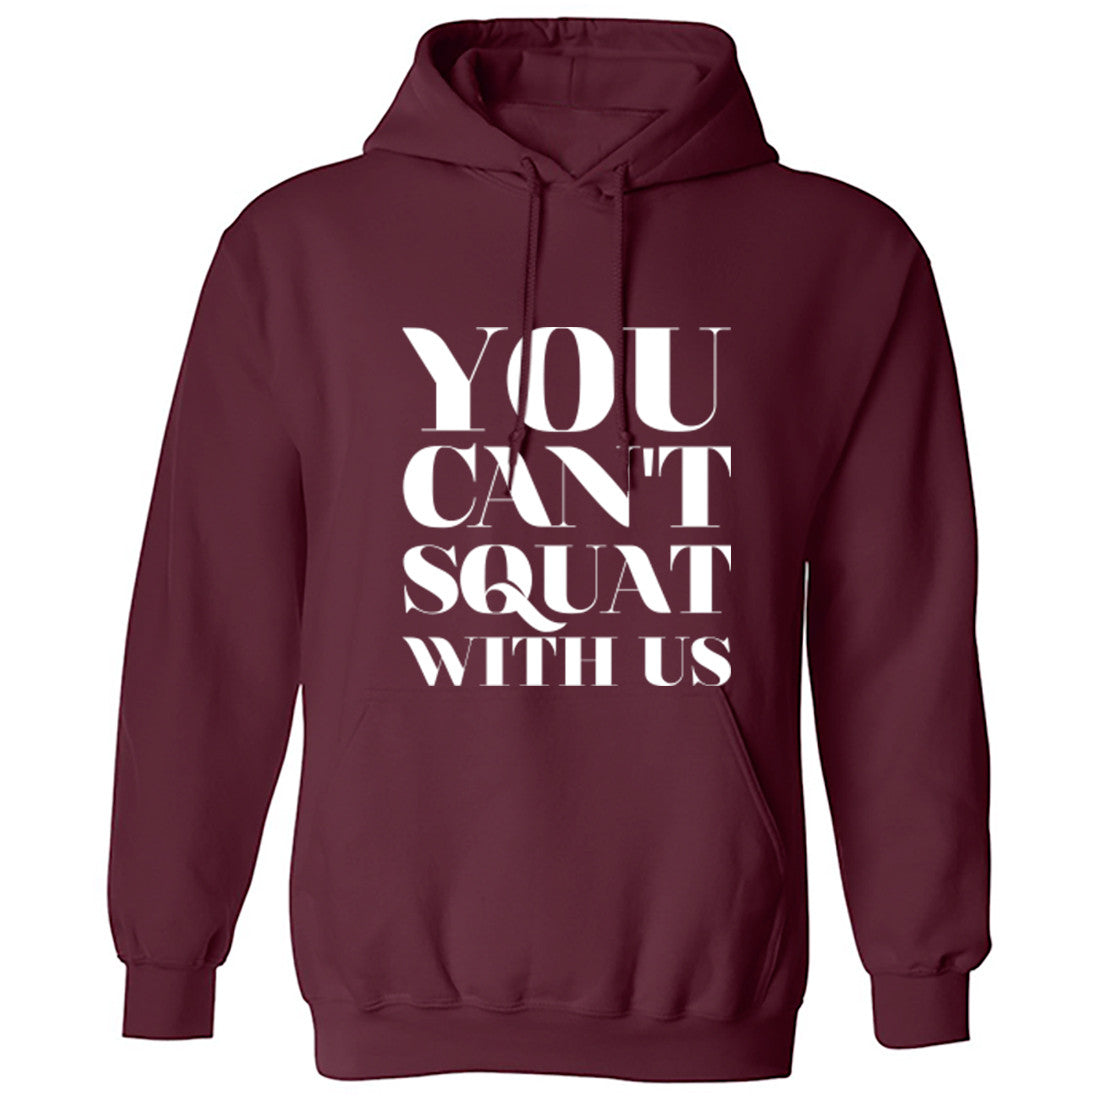 You Can't Squat With Us Unisex Hoodie K0278 - Illustrated Identity Ltd.